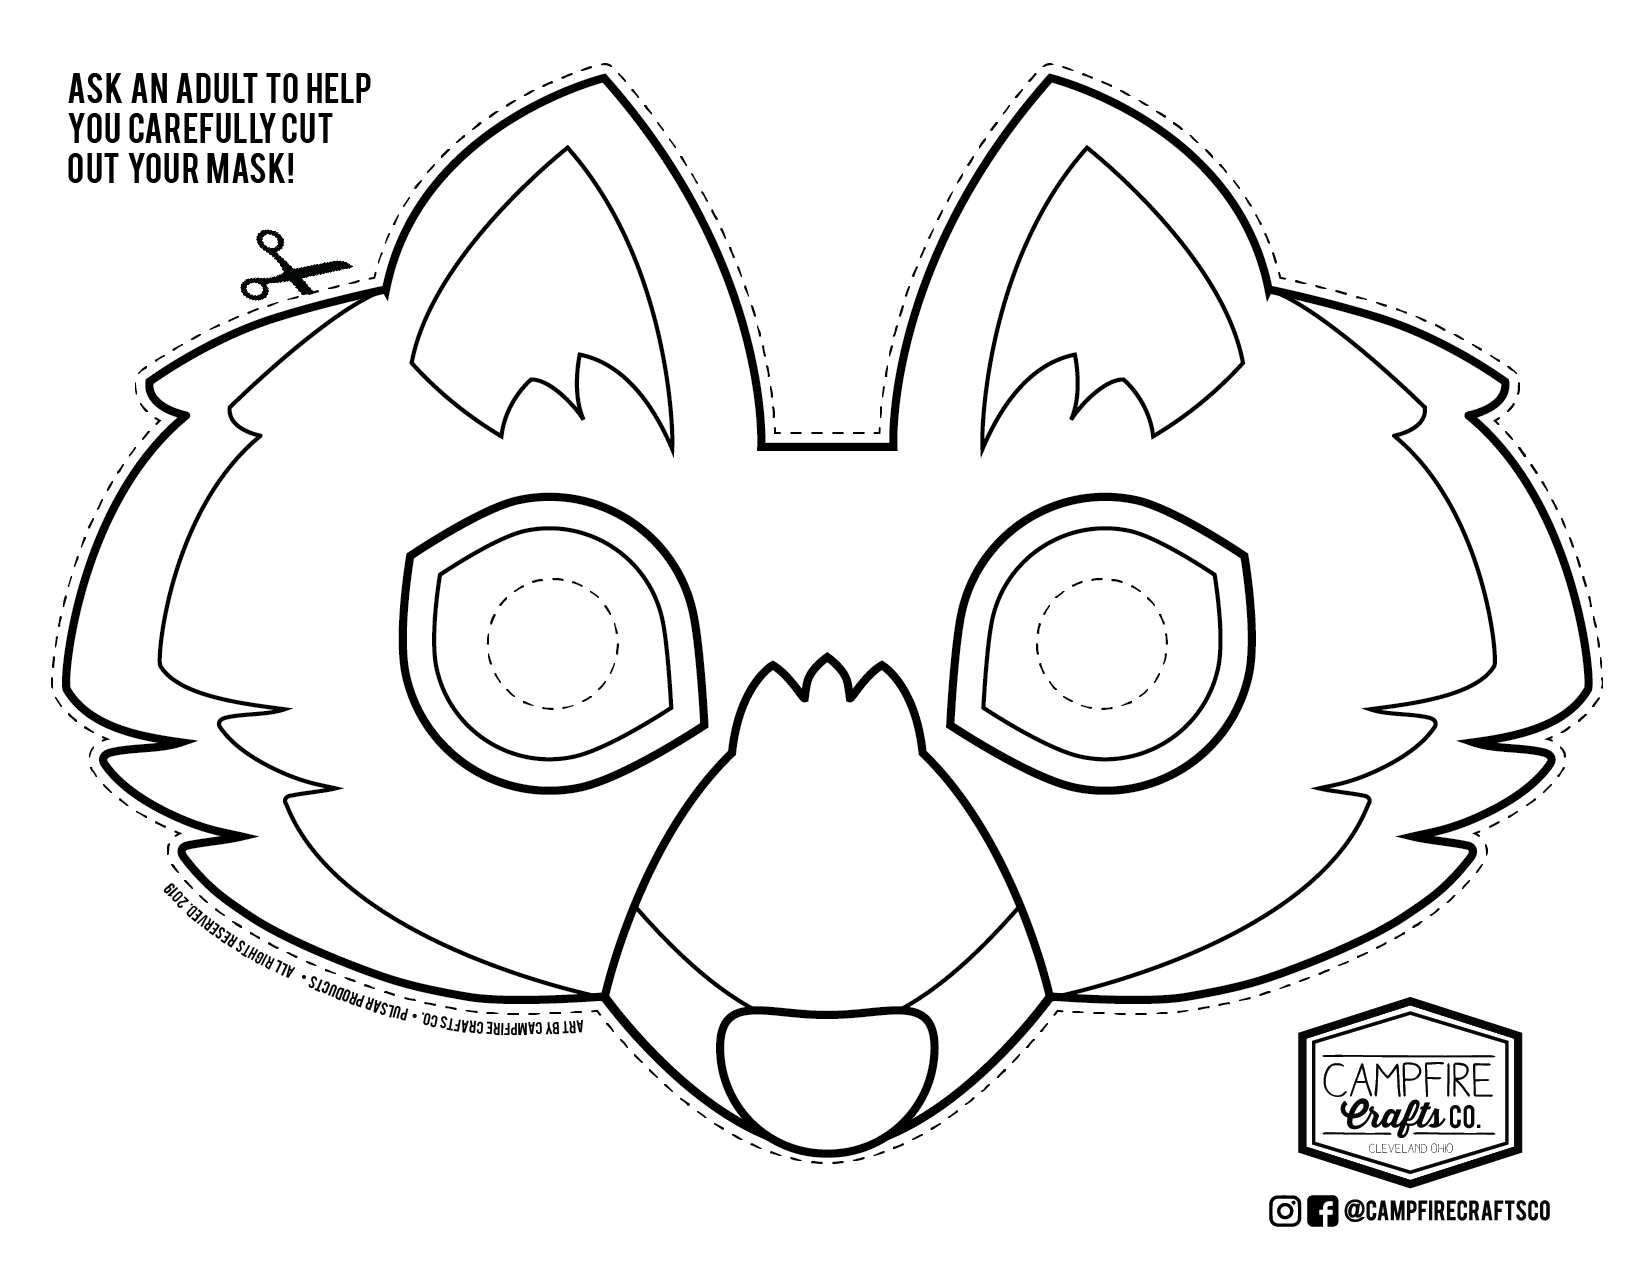 Coloring Pages-03.png